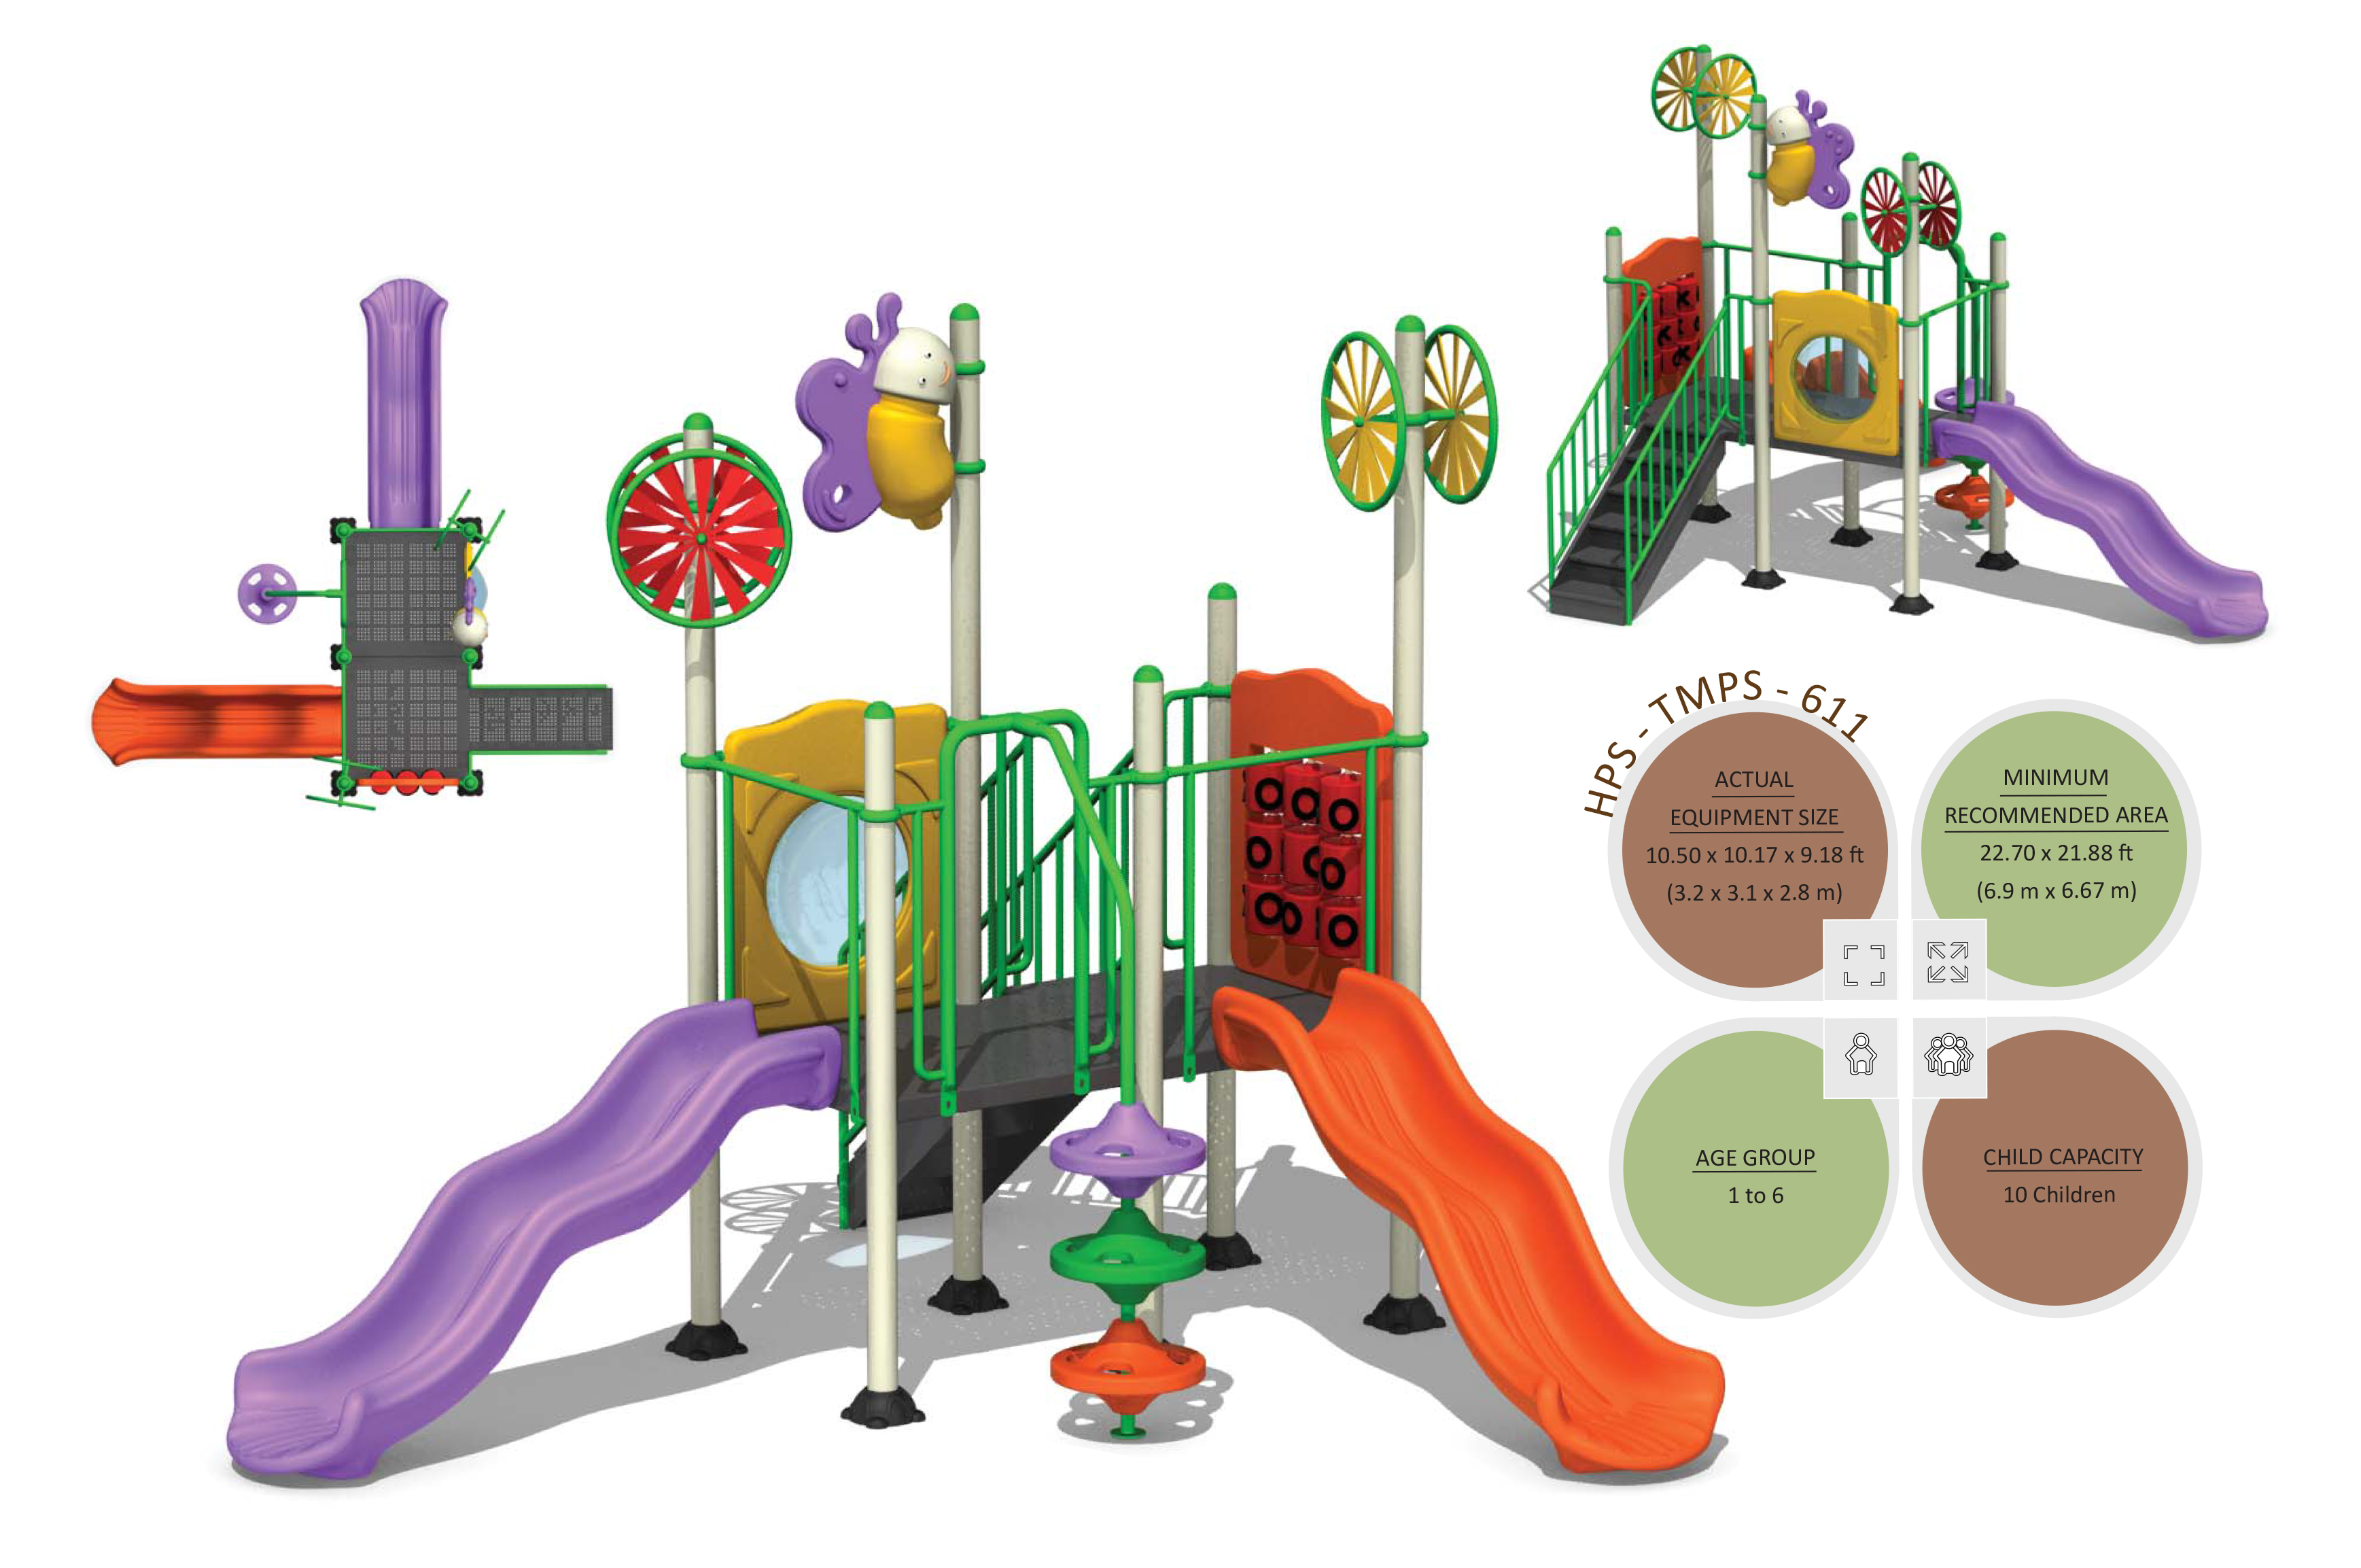 Outdoor Playground Equipments India Tmps 611 Toddlers